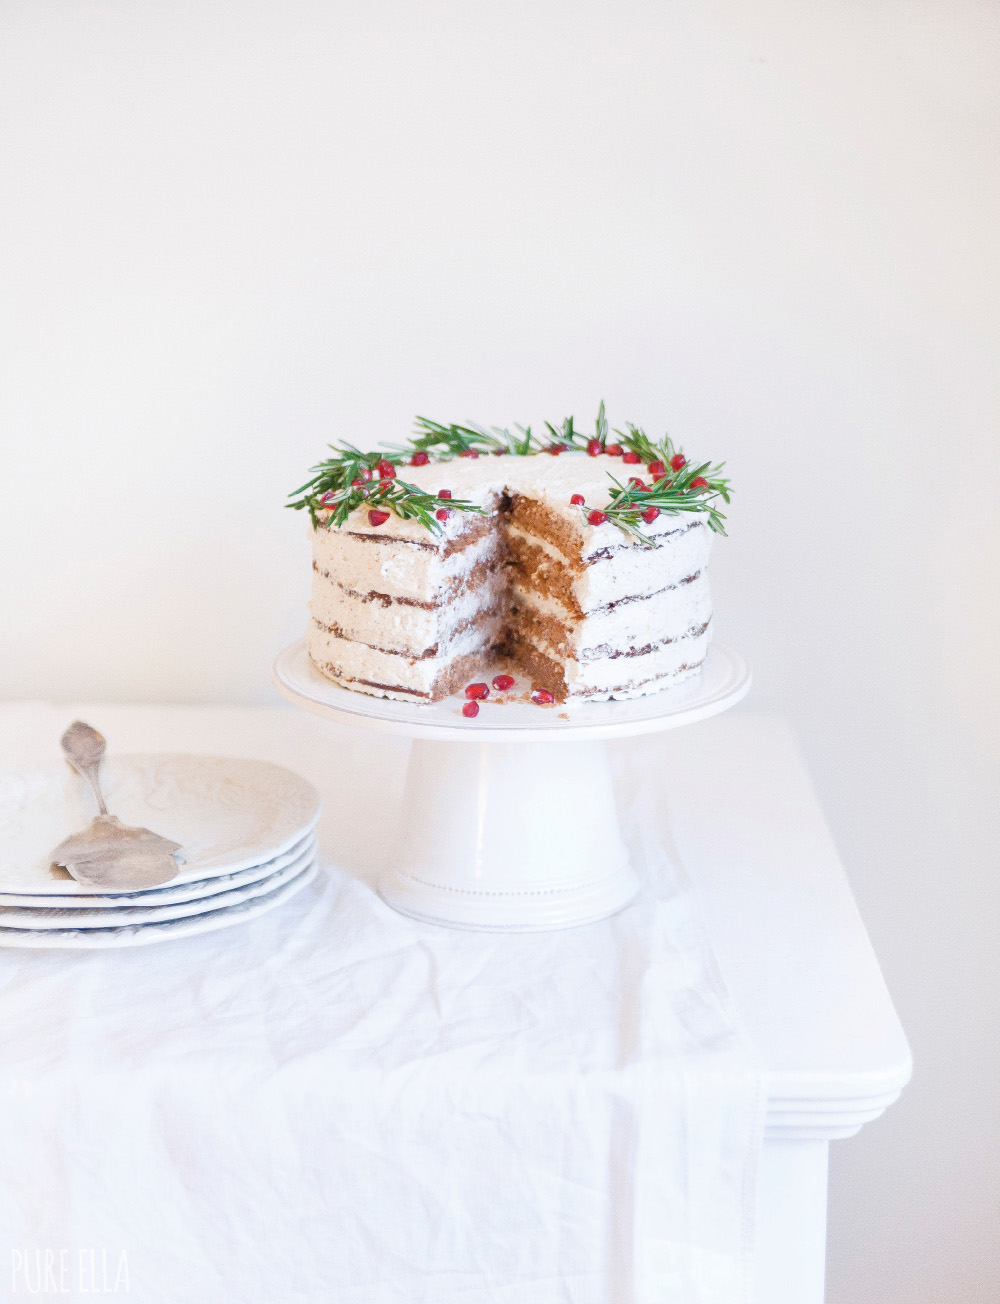 Gluten-free-Vegan-Gingerbread-Christmas-Wreath-Cake-Recipe7